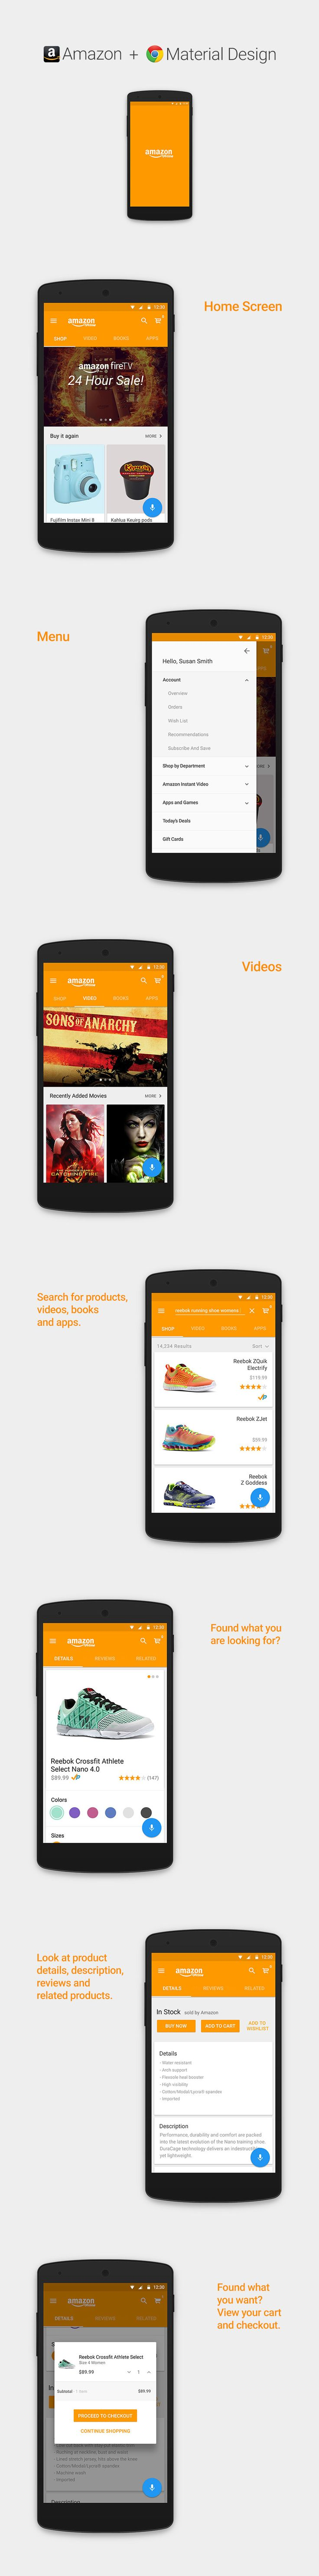 Best 25+ Android app design ideas on Pinterest   Android web app ...